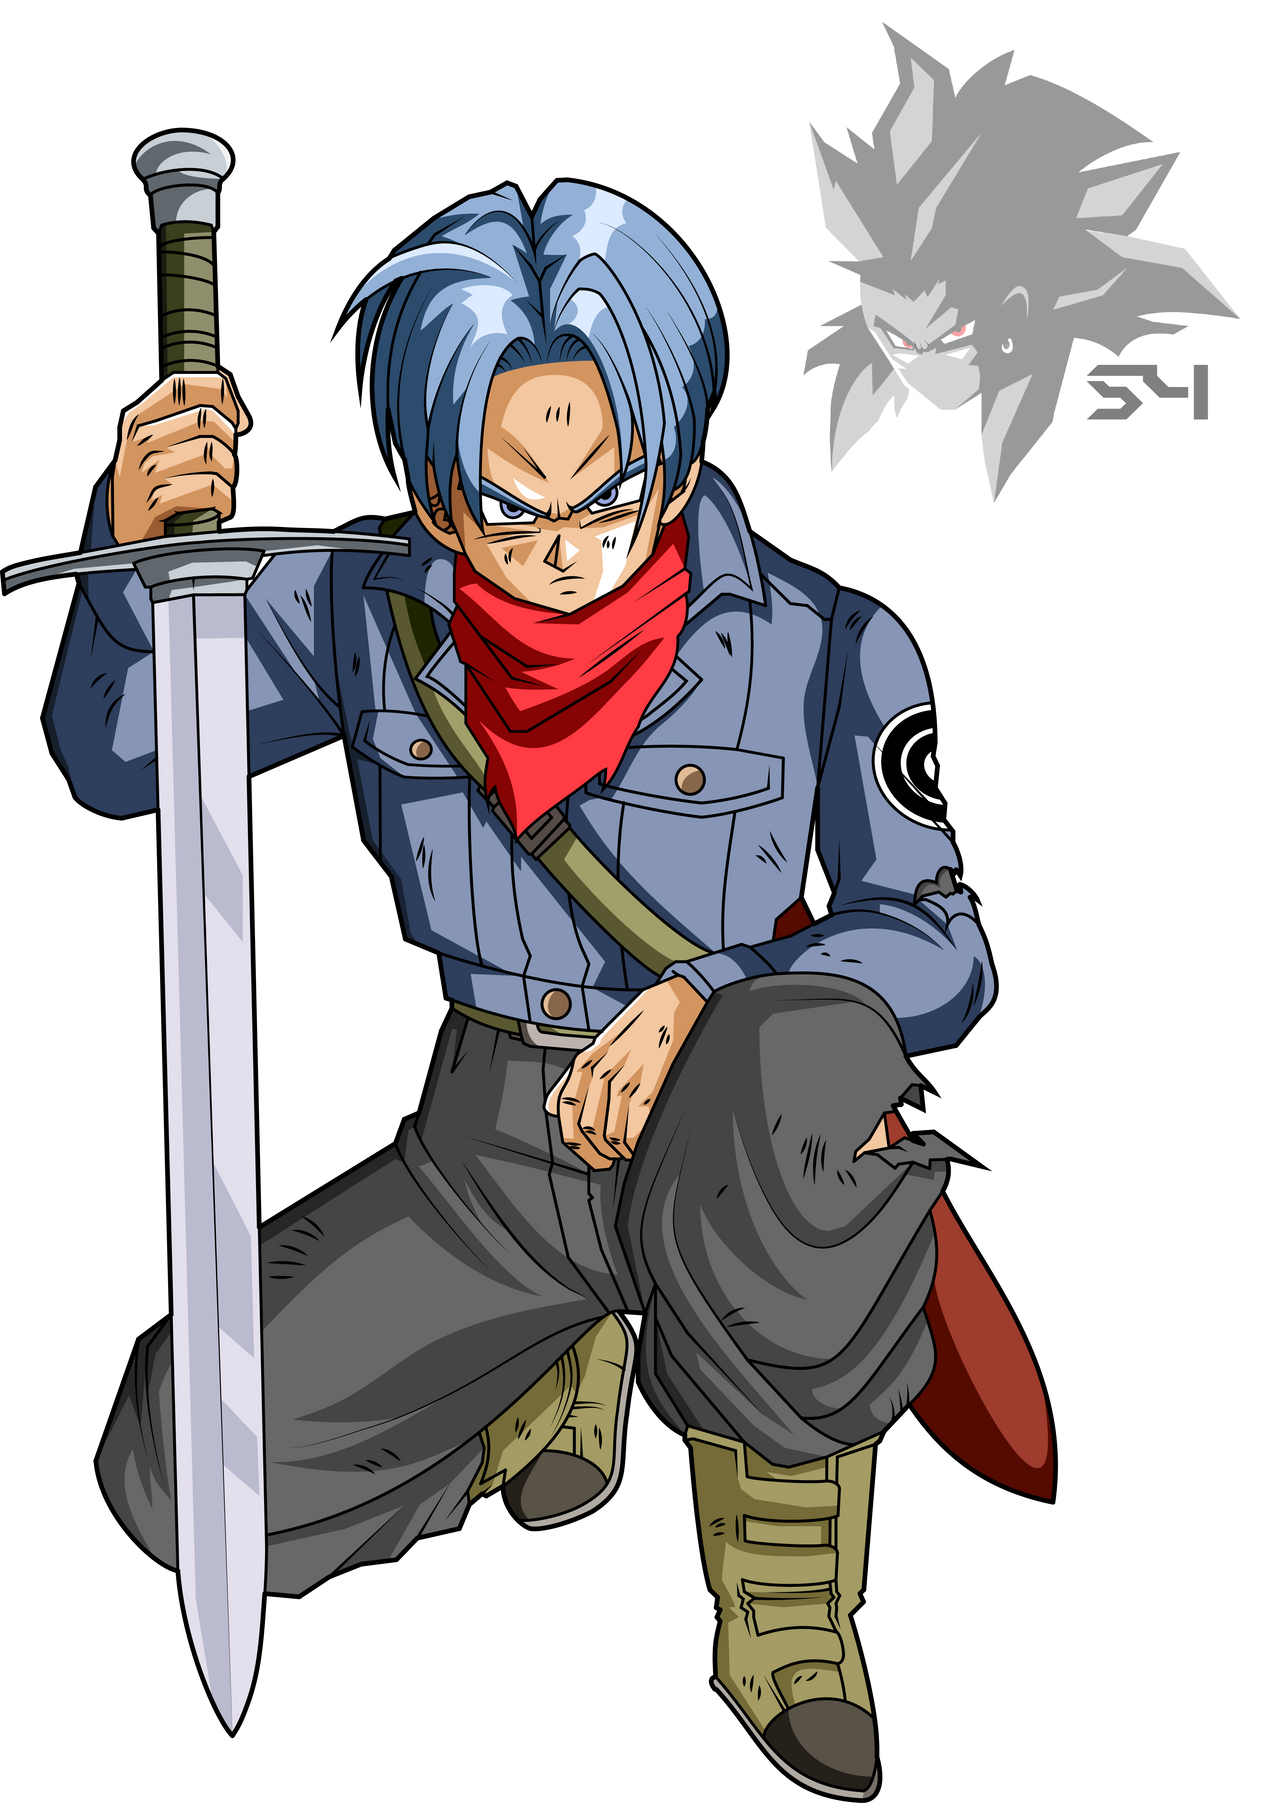 Future Trunks Dragon Ball Super by MAD-54 on DeviantArt